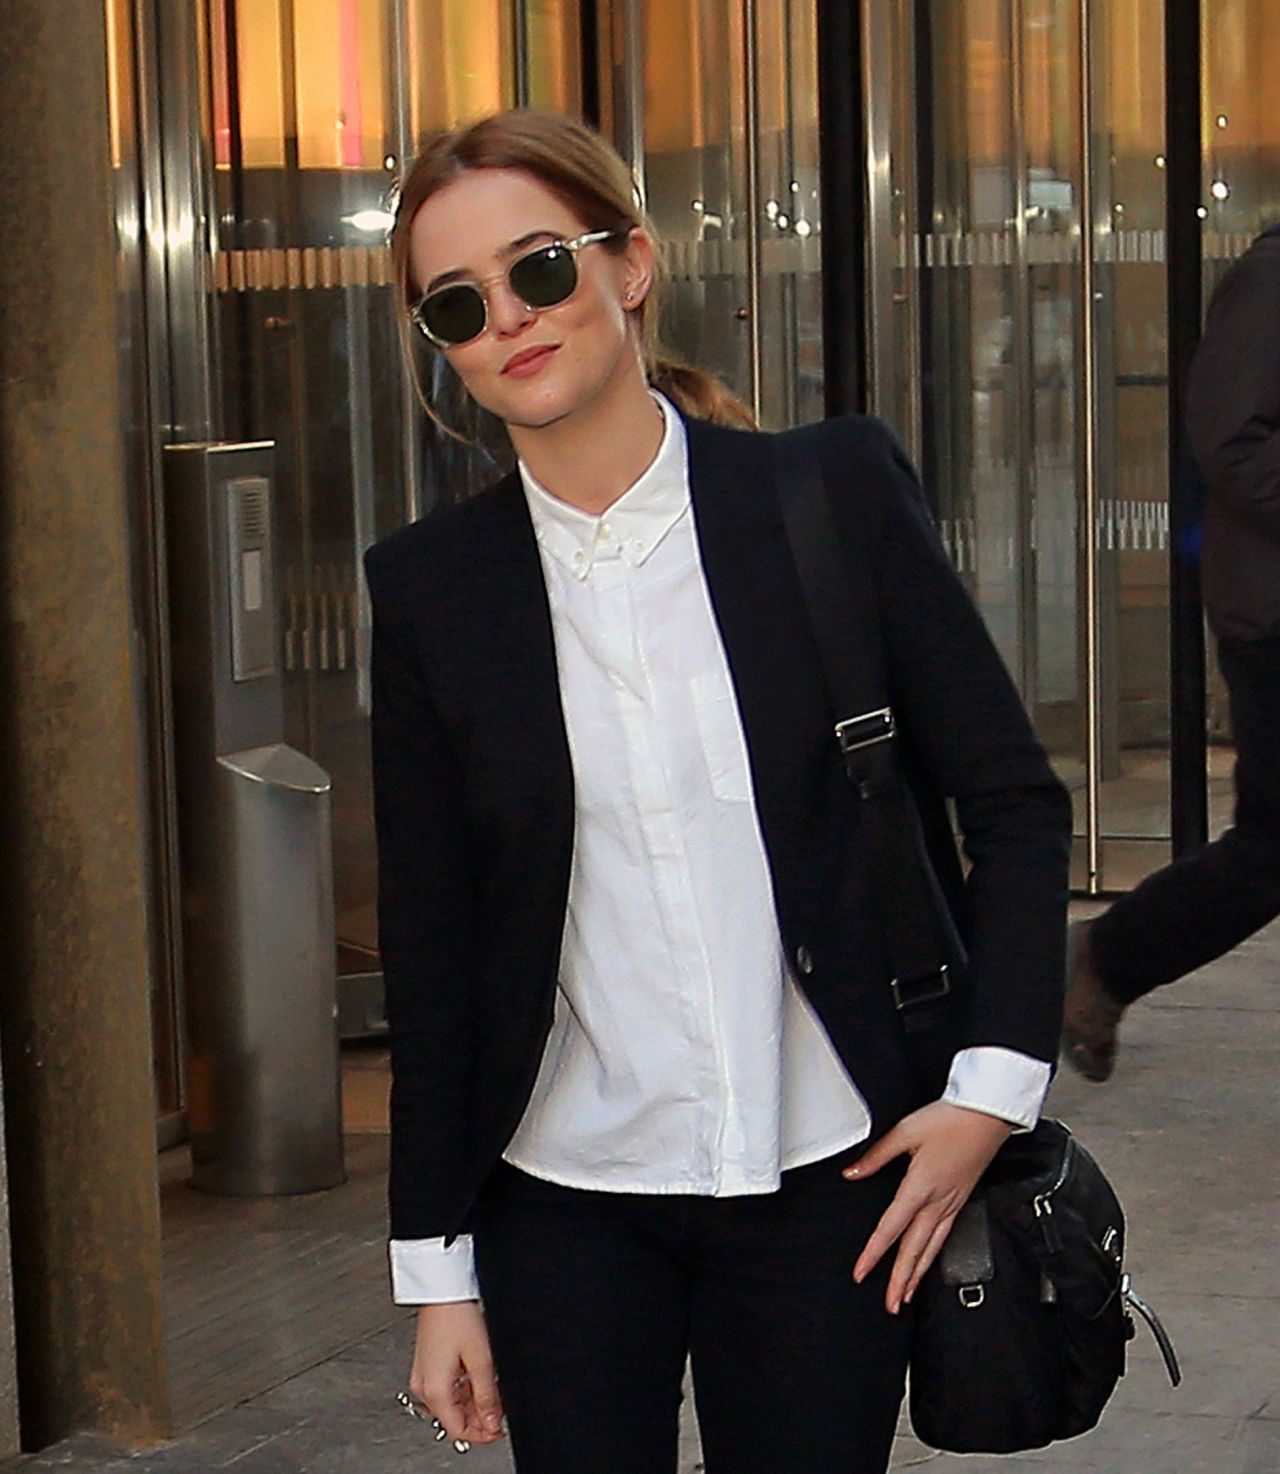 Zoey Deutch - Leaving The World Trade Center in New York City, Feb. 2015